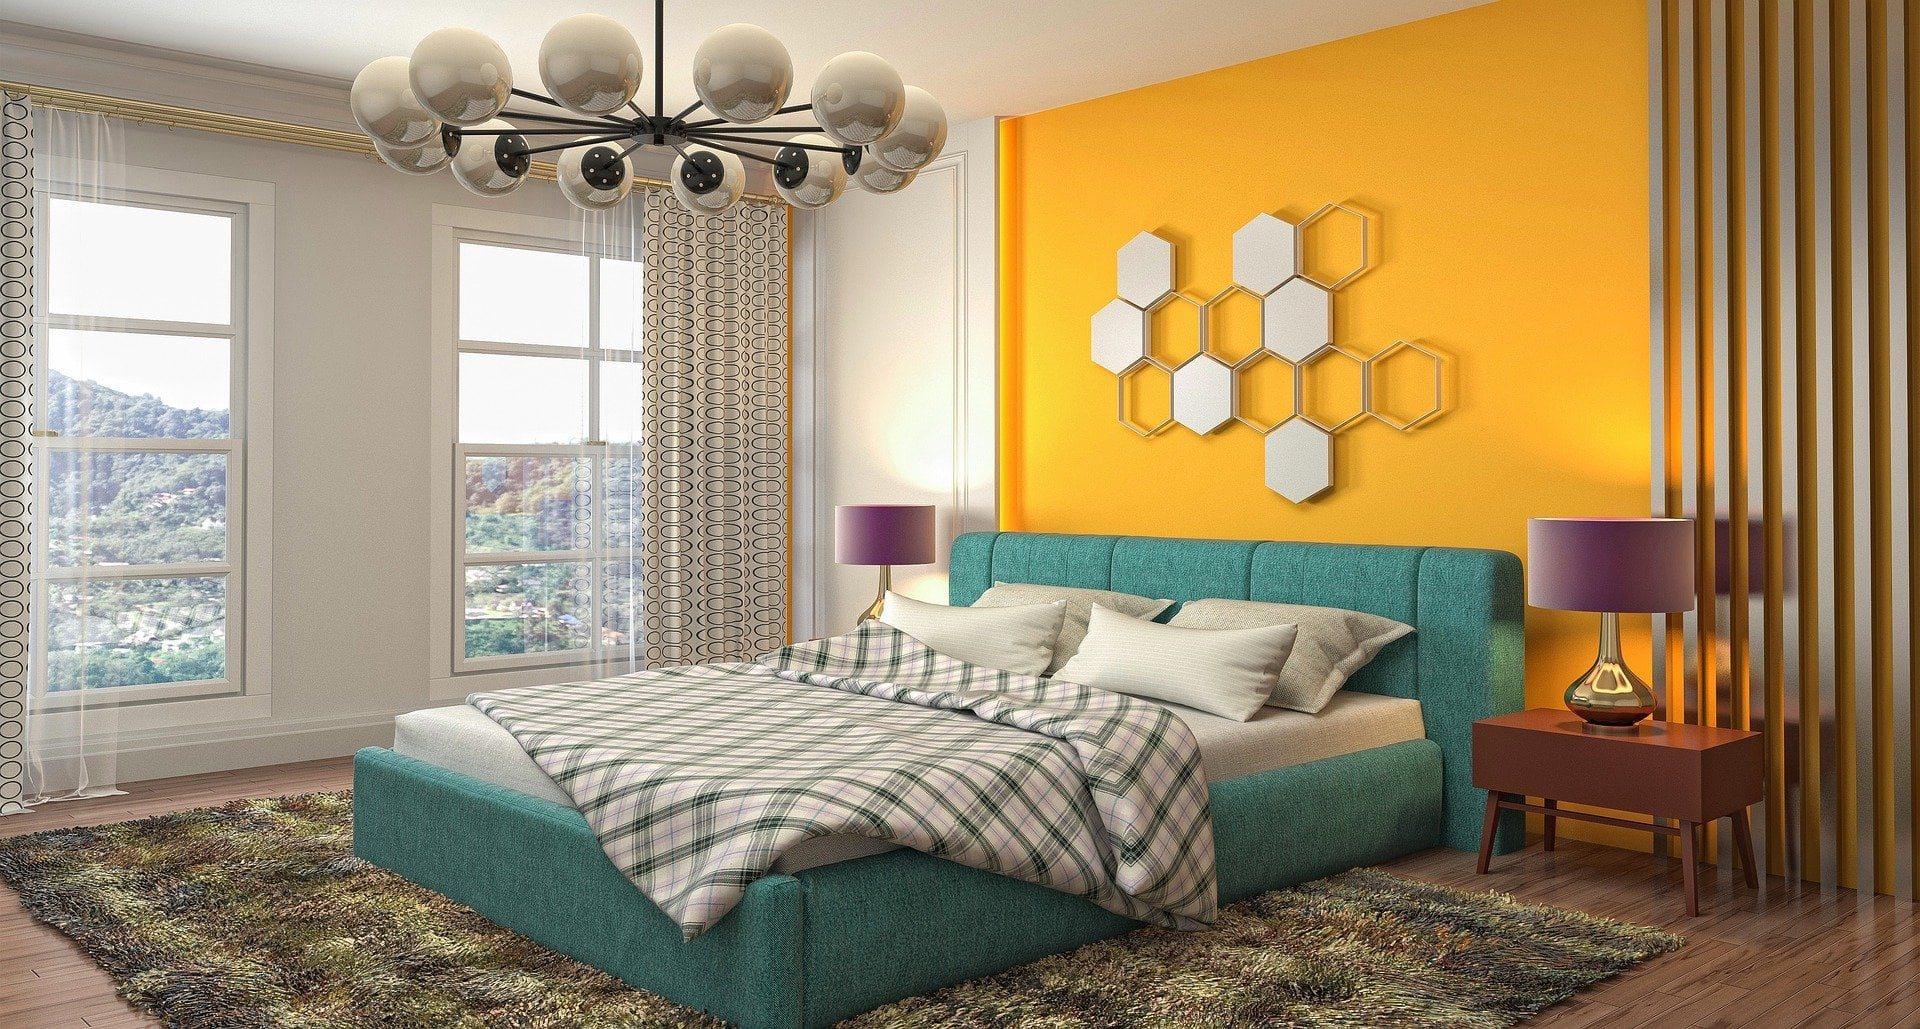 Black and White Patterned Curtains With Bright Yellow Walls